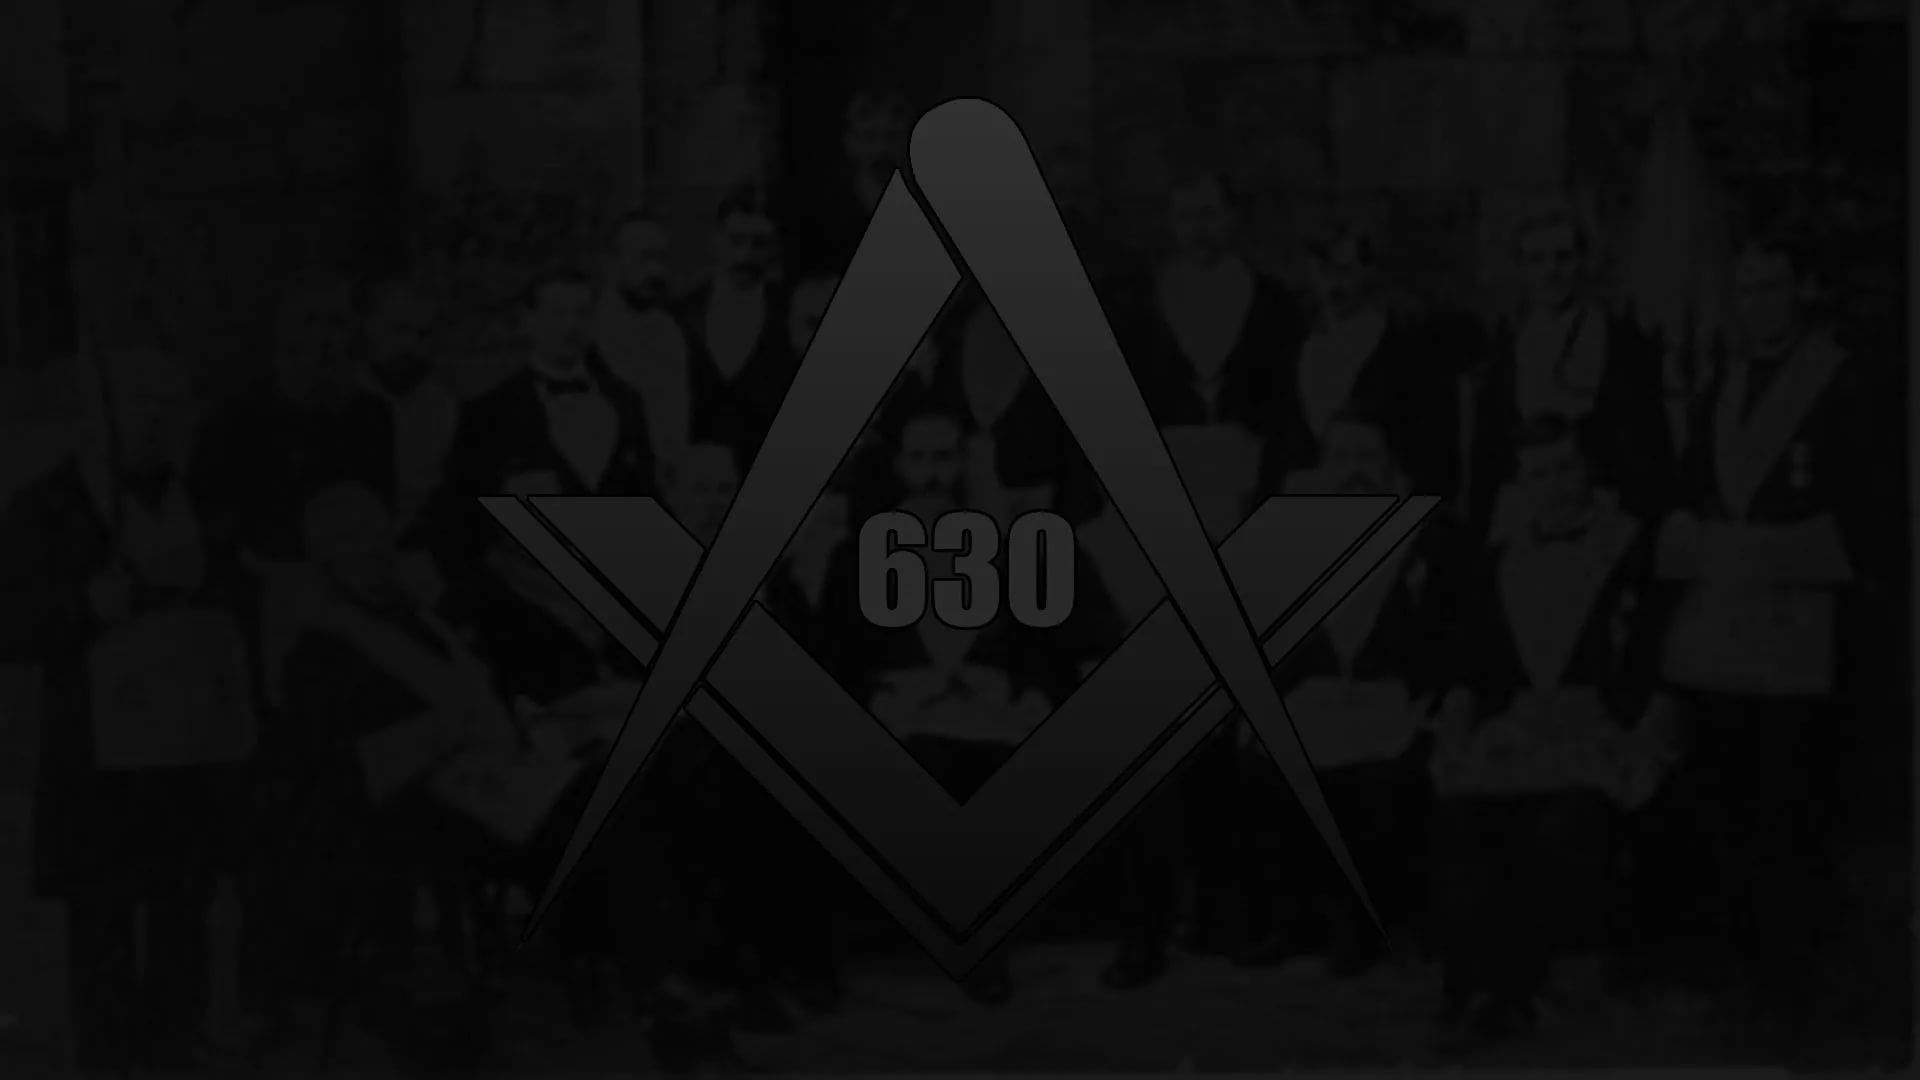 Freemason download free wallpapers for pc in hd